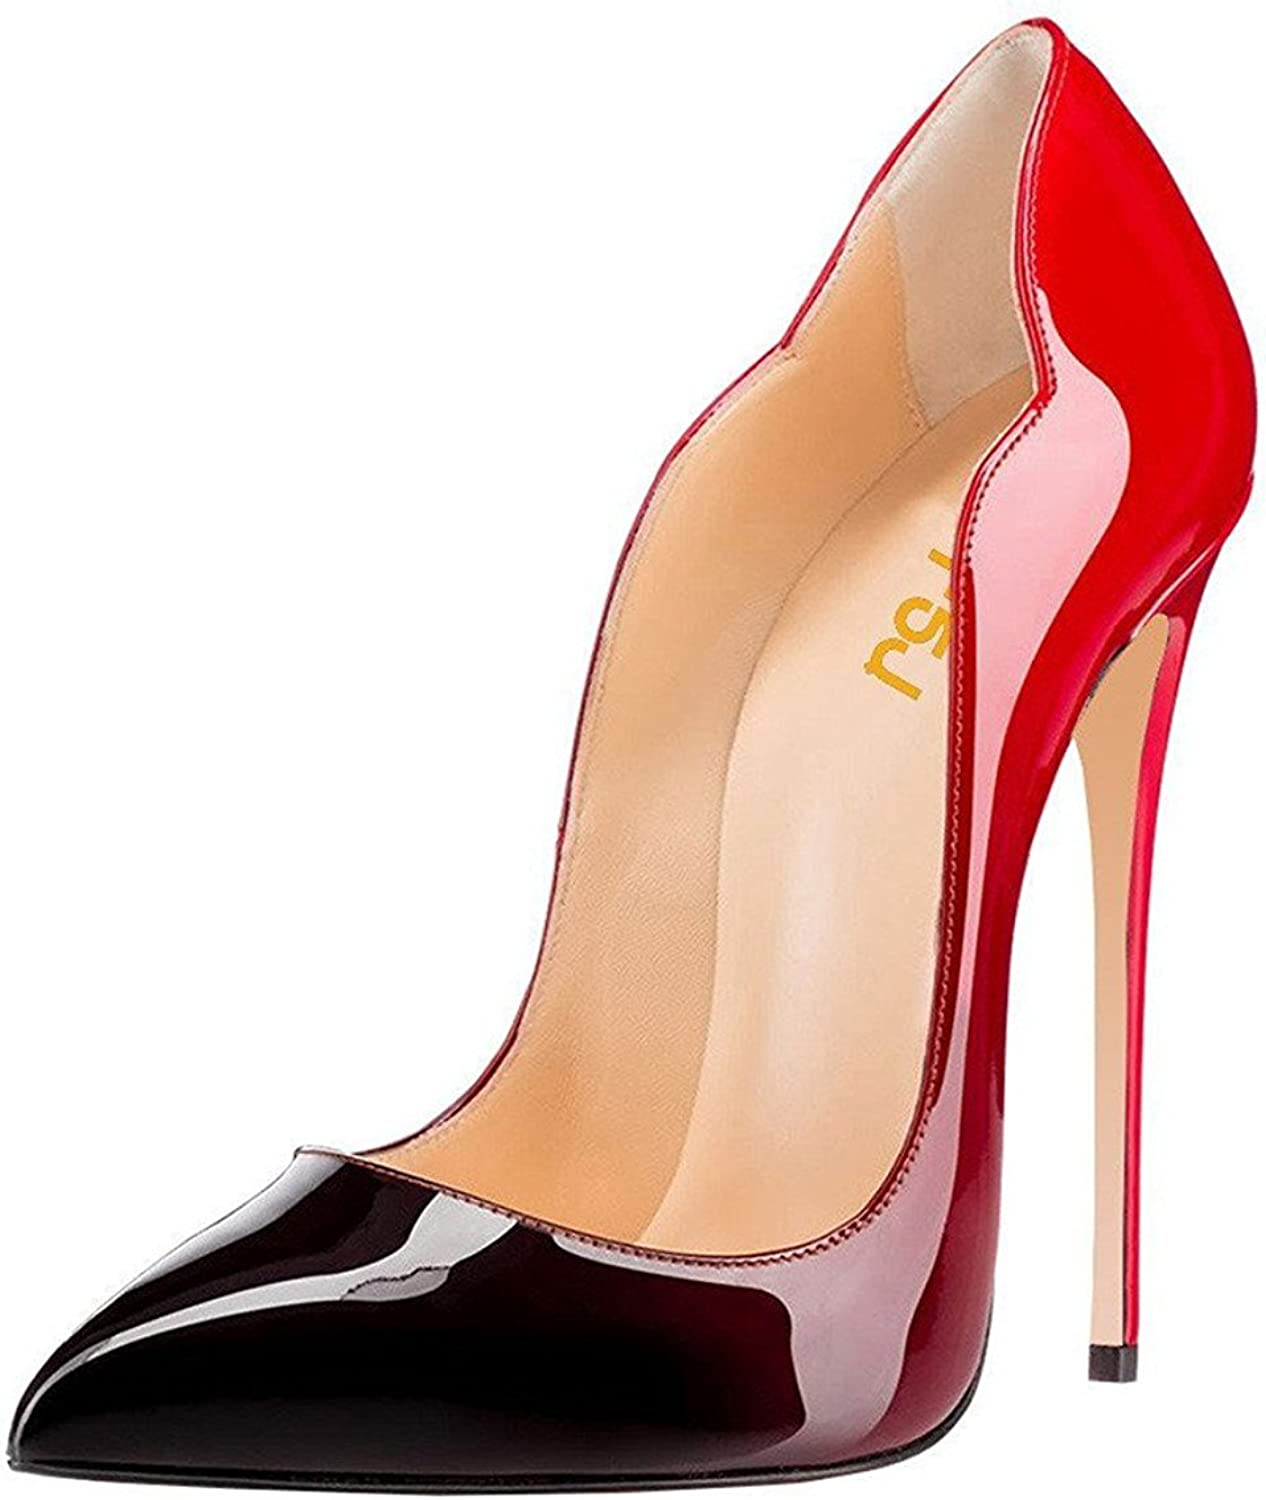 FSJ Women Classic Pointed Toe High Heels Sexy Stiletto Pumps Office Lady Dress shoes Size 8.5 Gradient